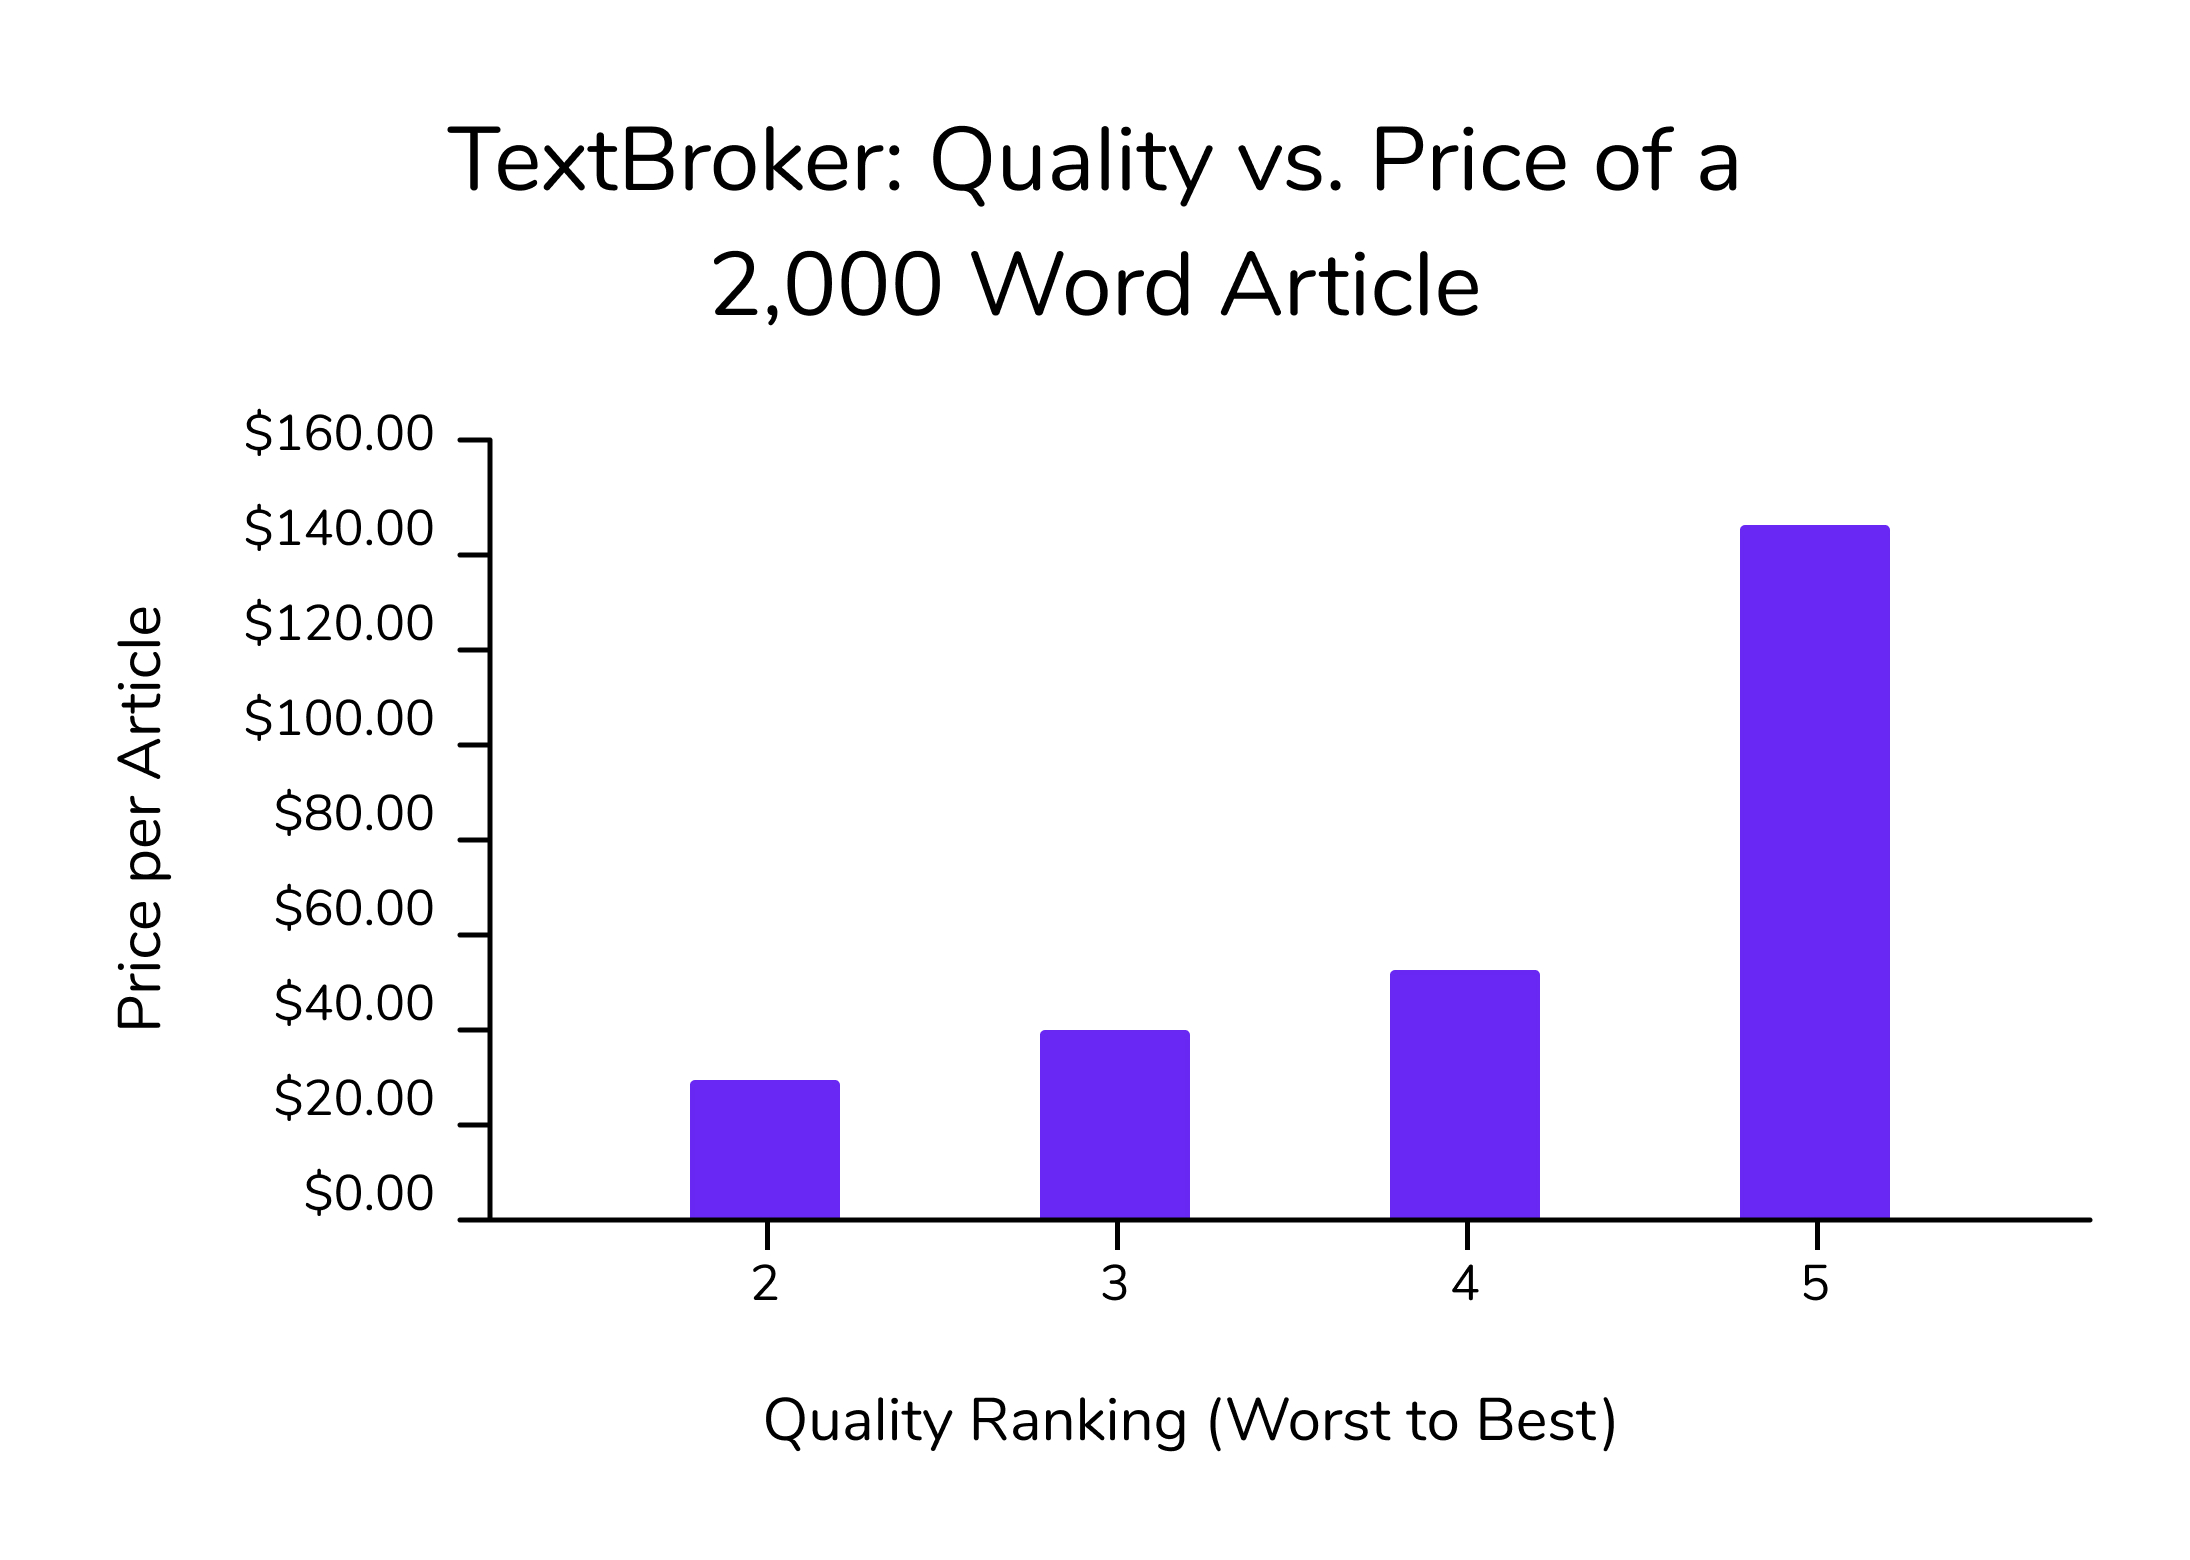 Bar chart showing how a 2,000 word TextBroker article ranks higher as its price increases.